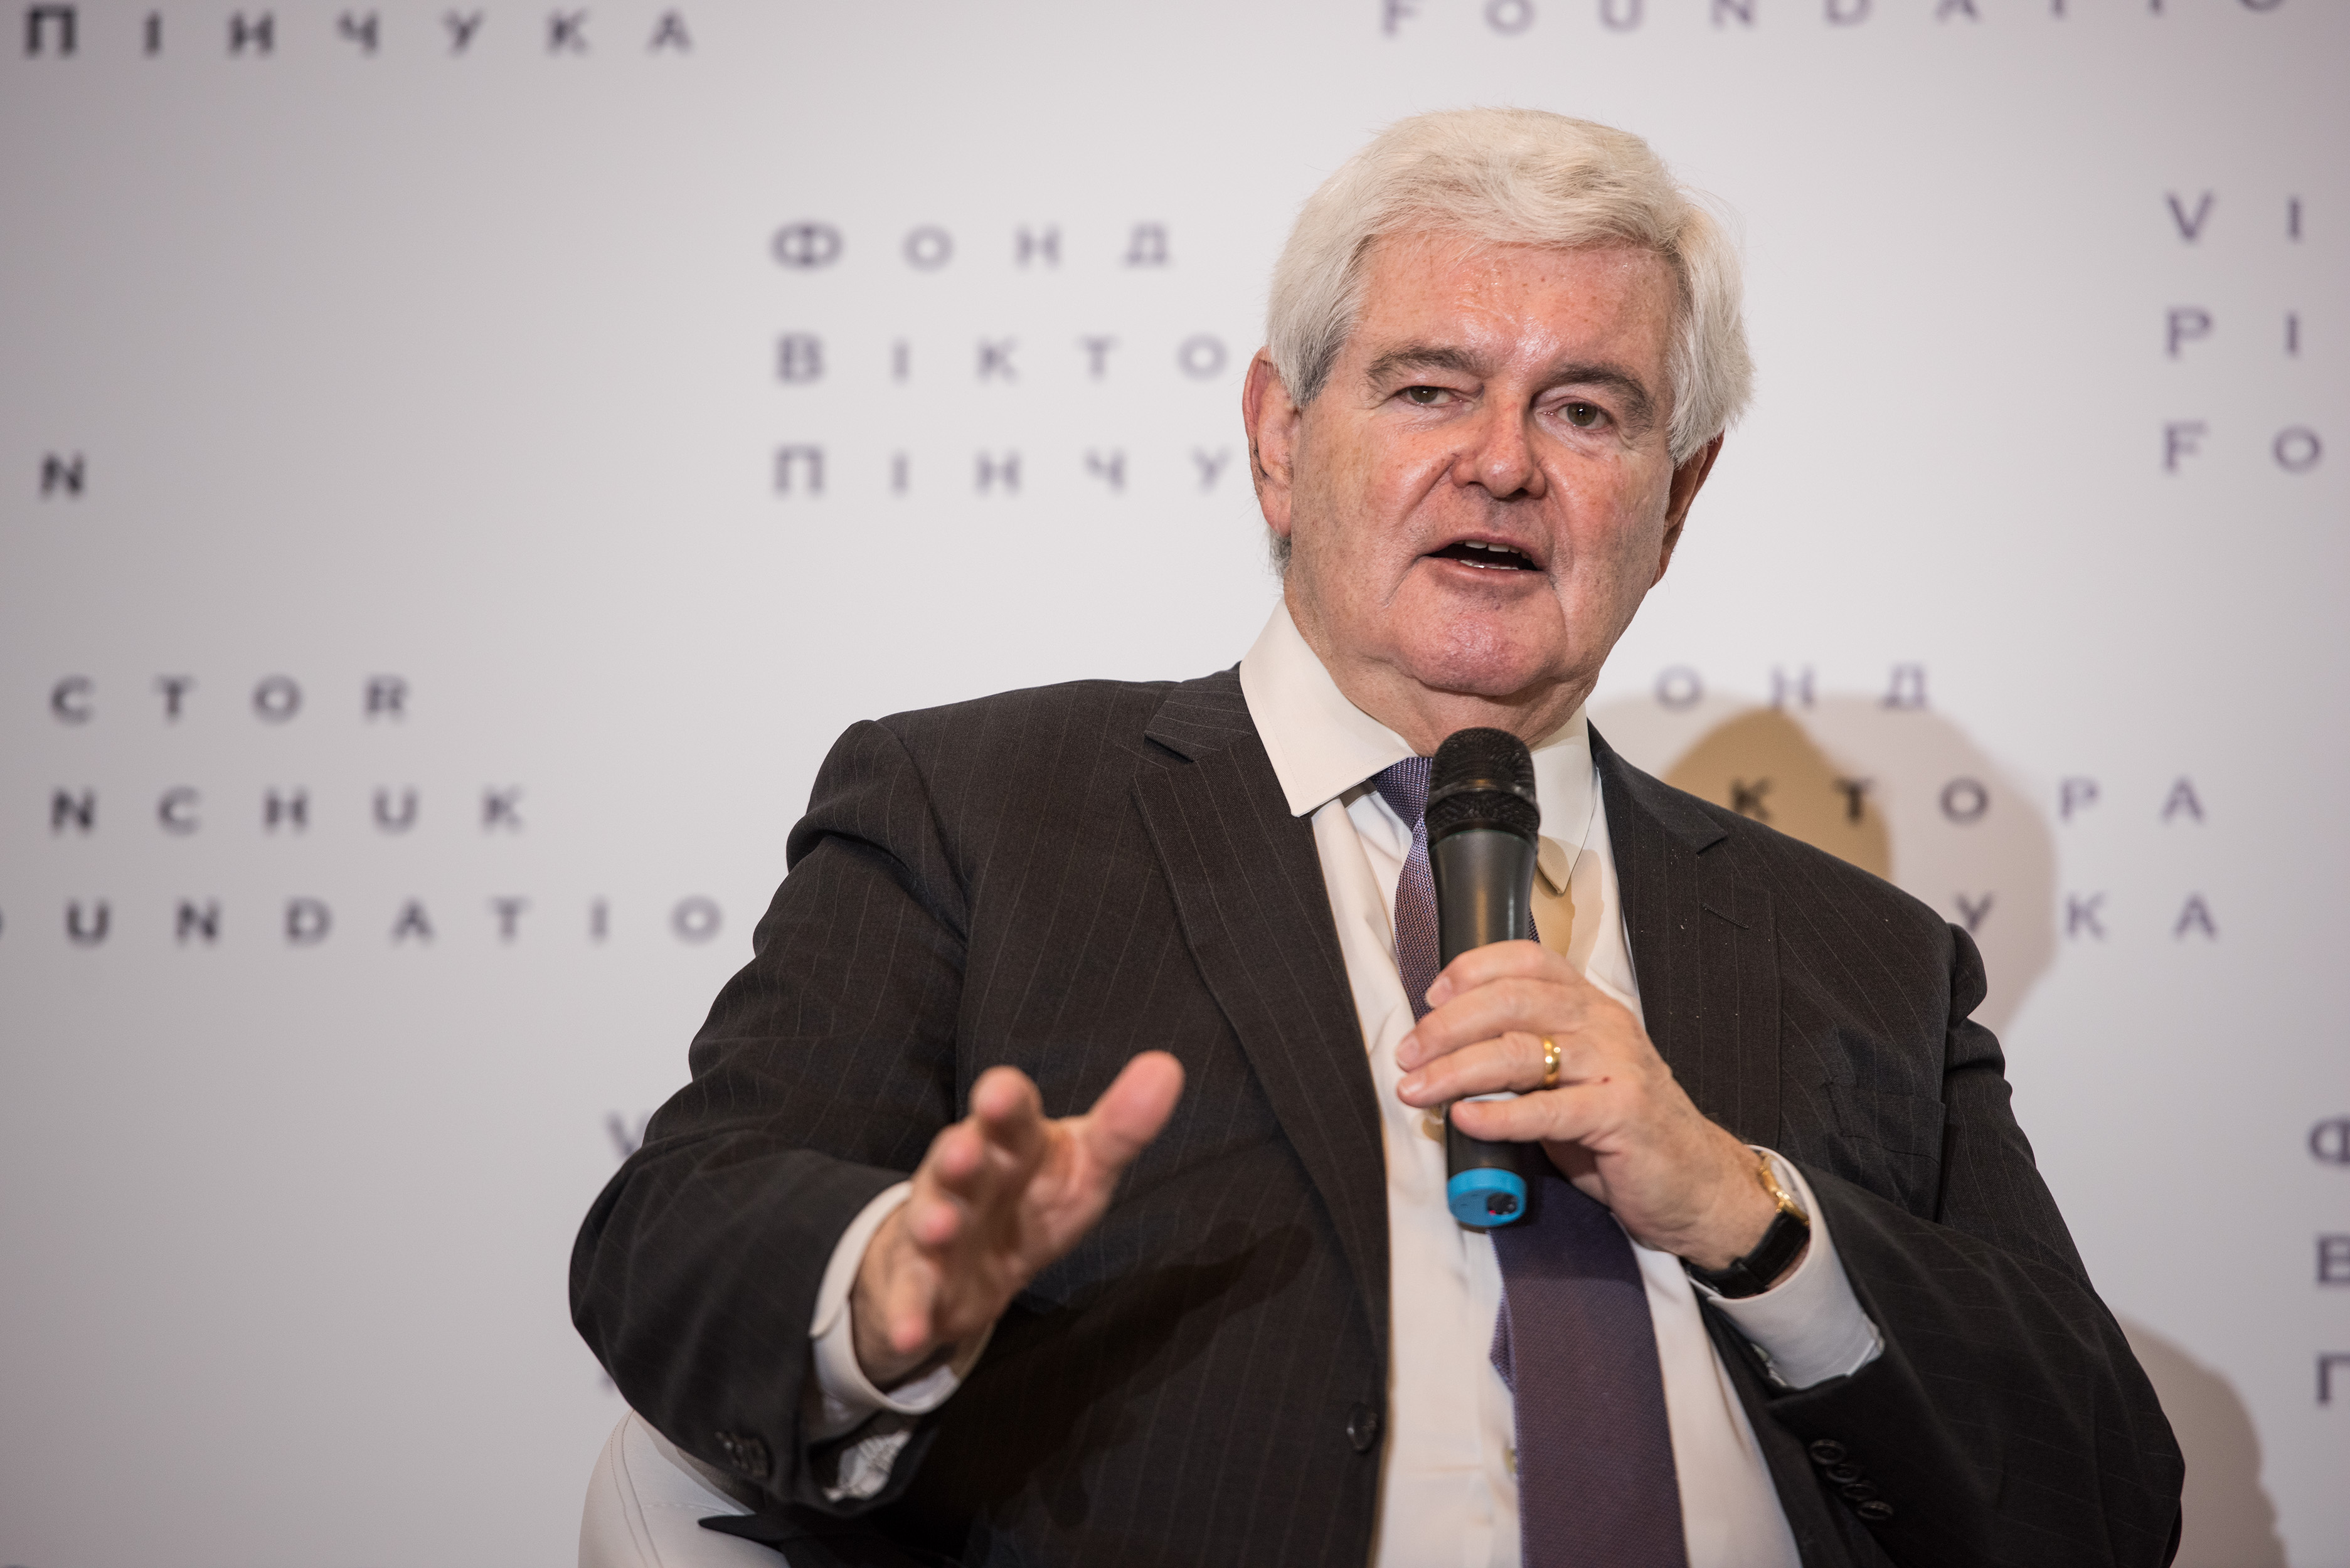 Public lecture by Newt Gingrich